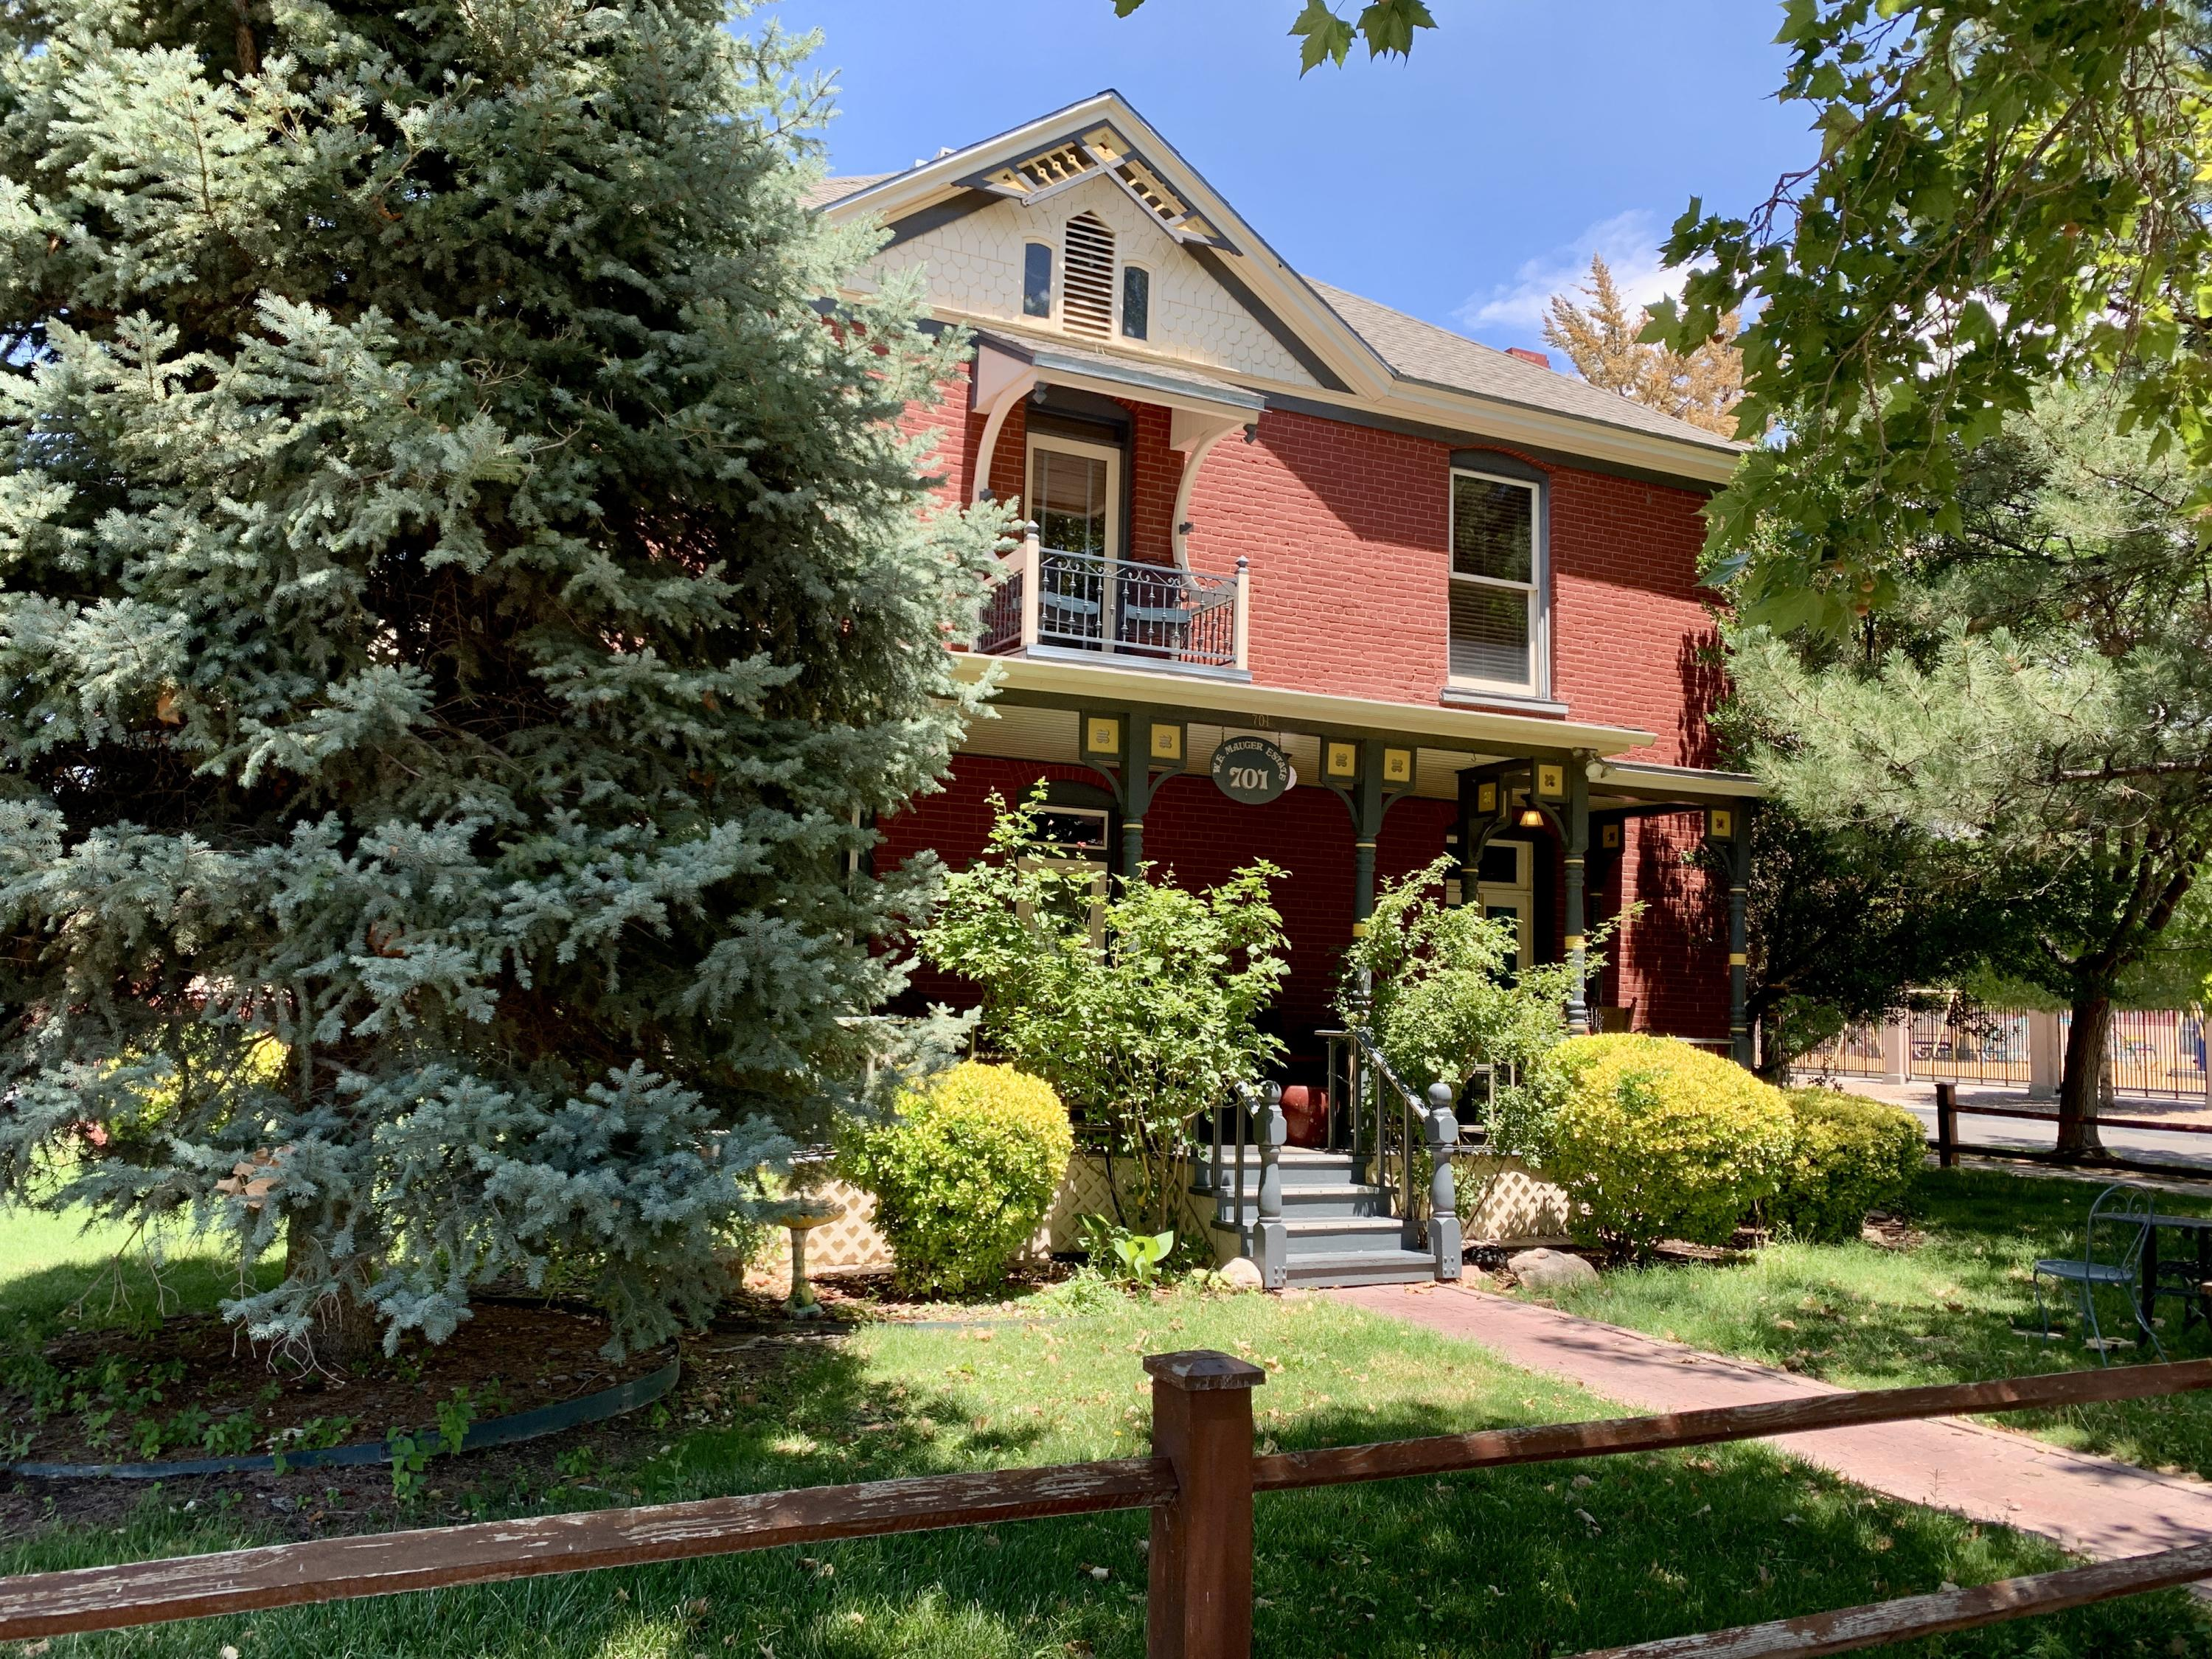 Rare opportunity to own a piece of Albuquerque History! Reside in your own downtown mansion, or use as excellent income generating investment opportunity. Can be purchased as furnished turnkey business or residence. Airbnb investors look no further. Home has contactless check in options for each room, private baths, shared kitchen and dining area. Huge parking lot, tasteful and easily maintained landscaping.